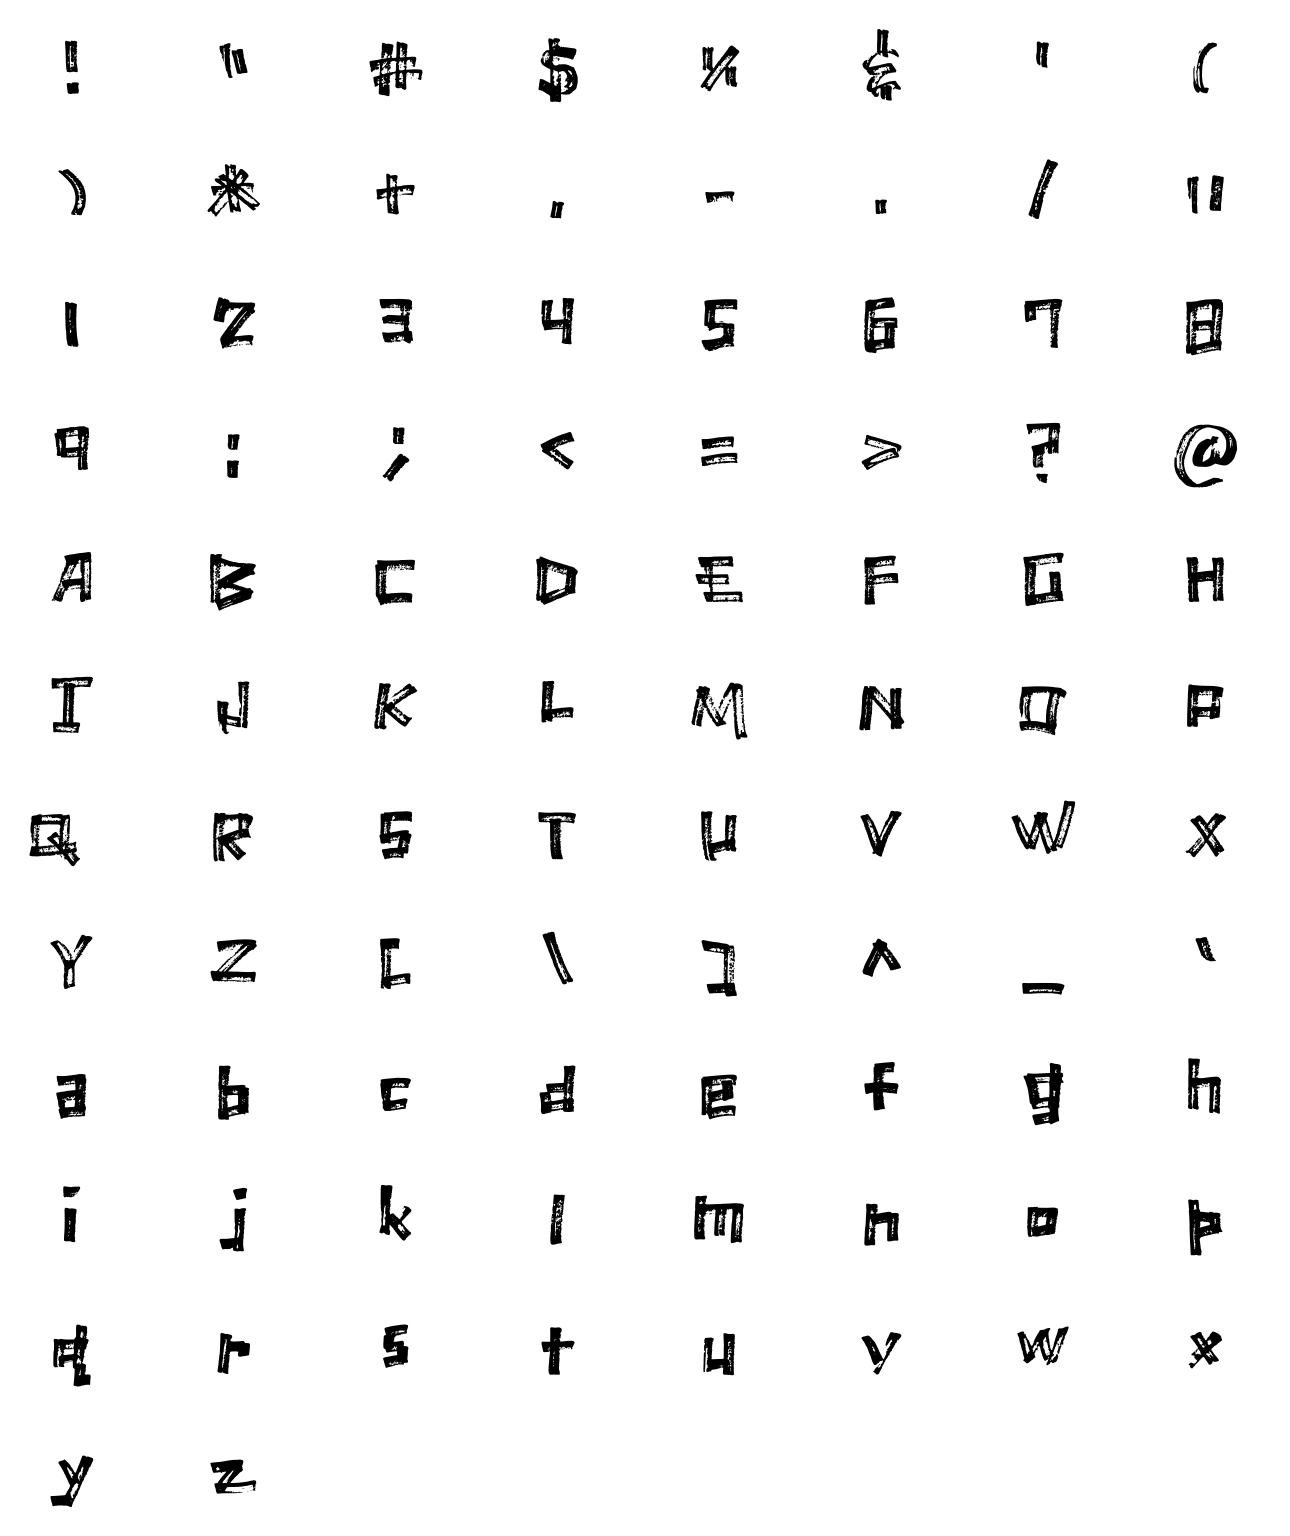 Pin on Fonts FREE